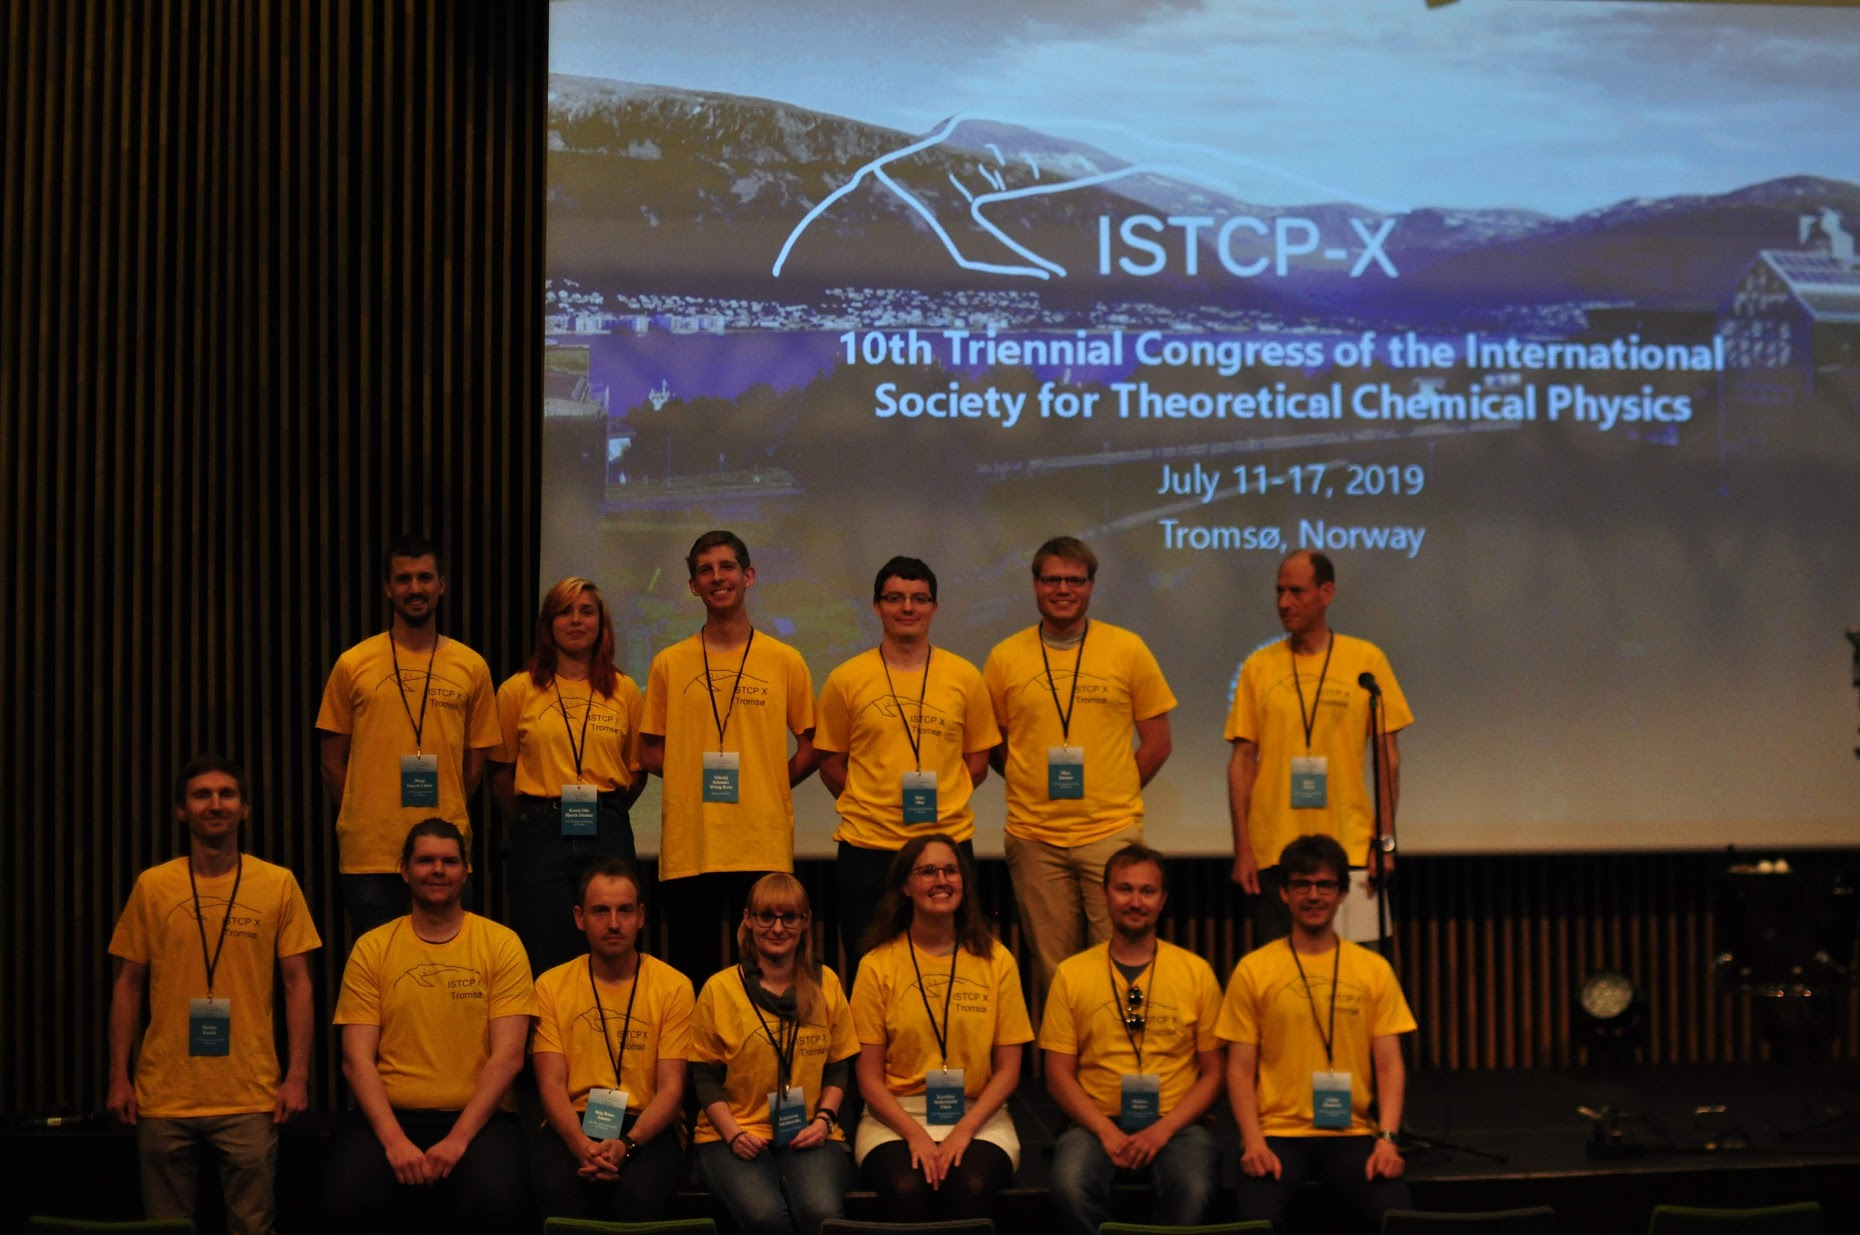 13 of the 17 staff members that were hard at work during the conference. Picture: Luca Frediani